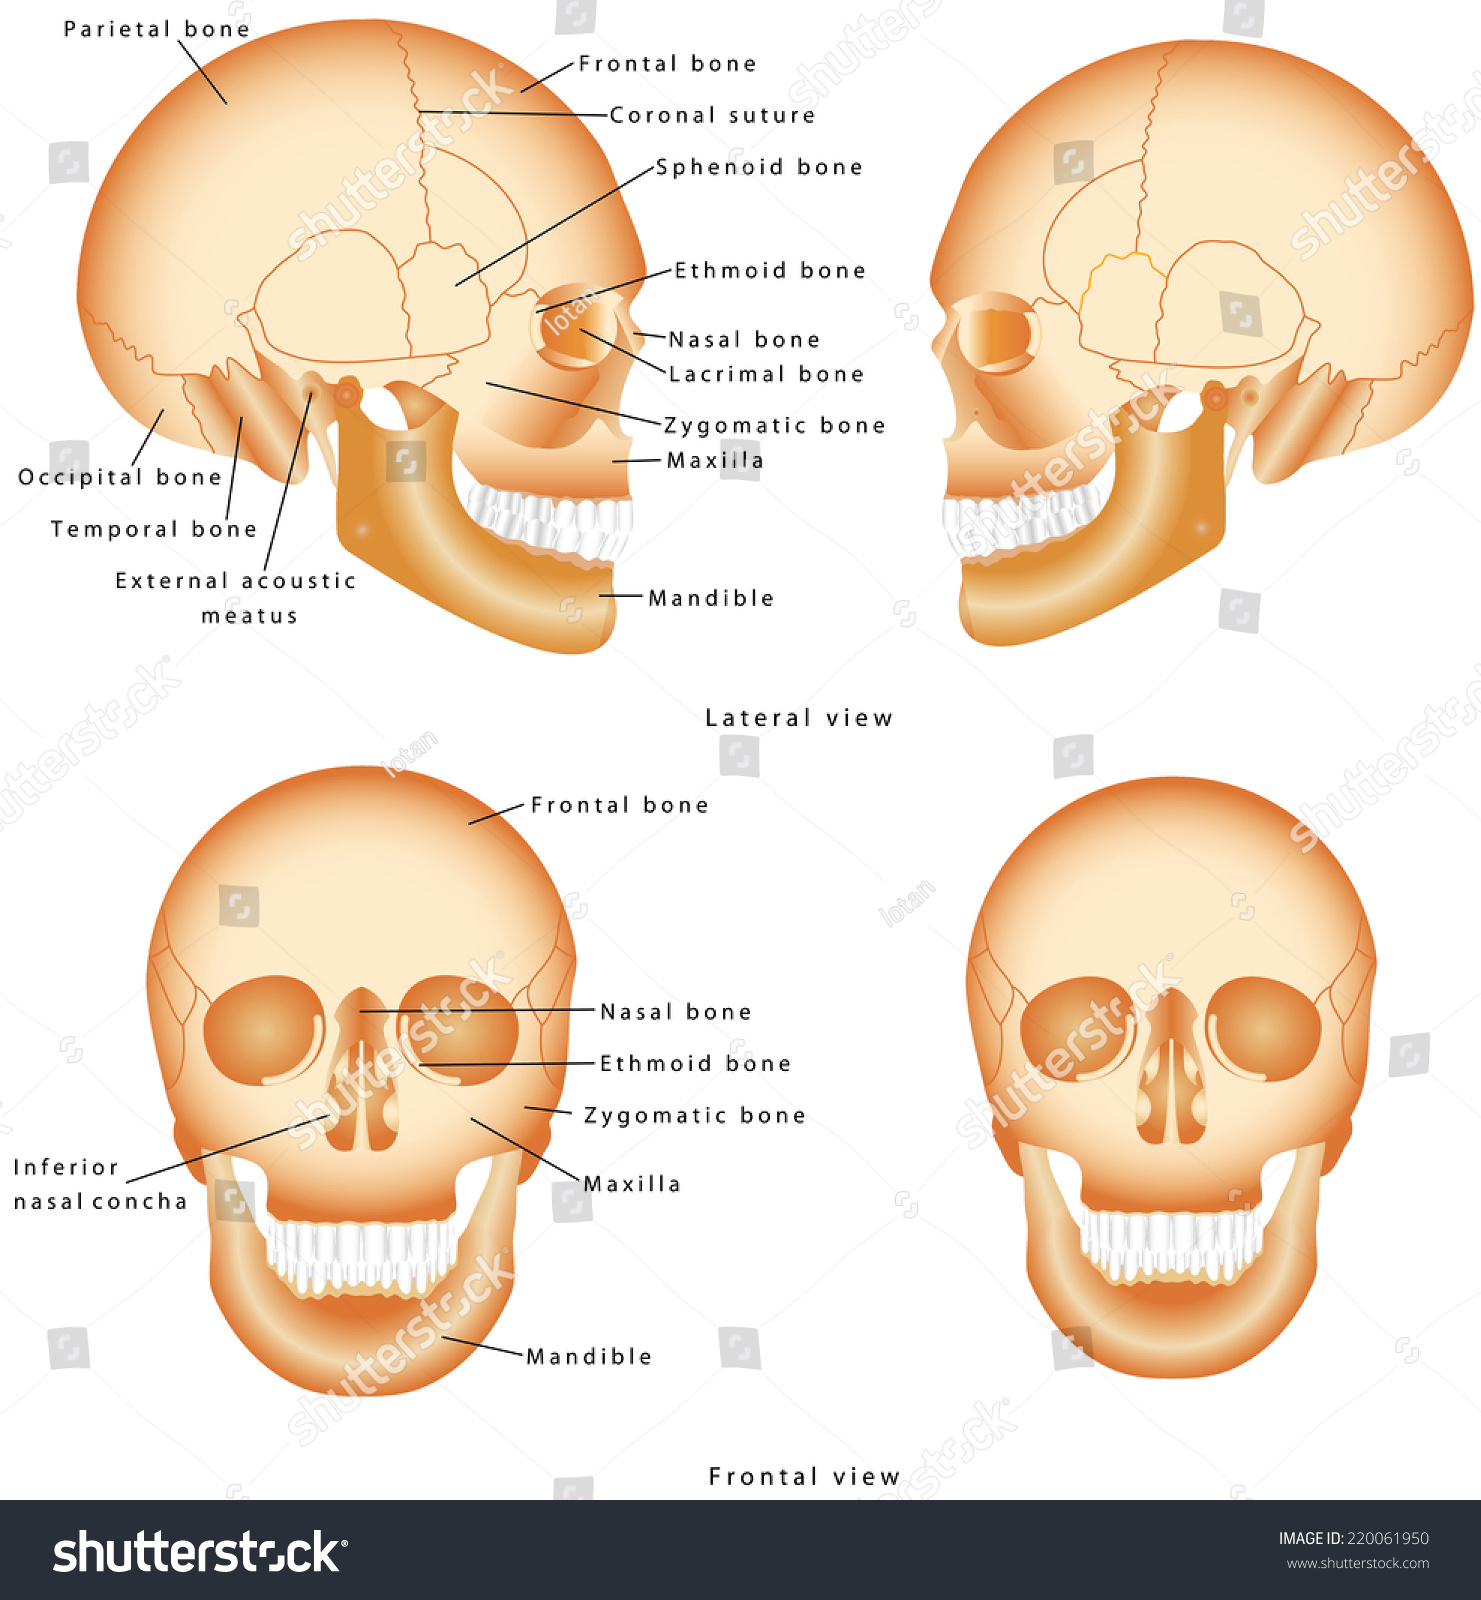 Human Skull Structure Skull Anatomy Labeling Stock Vector (Royalty ...